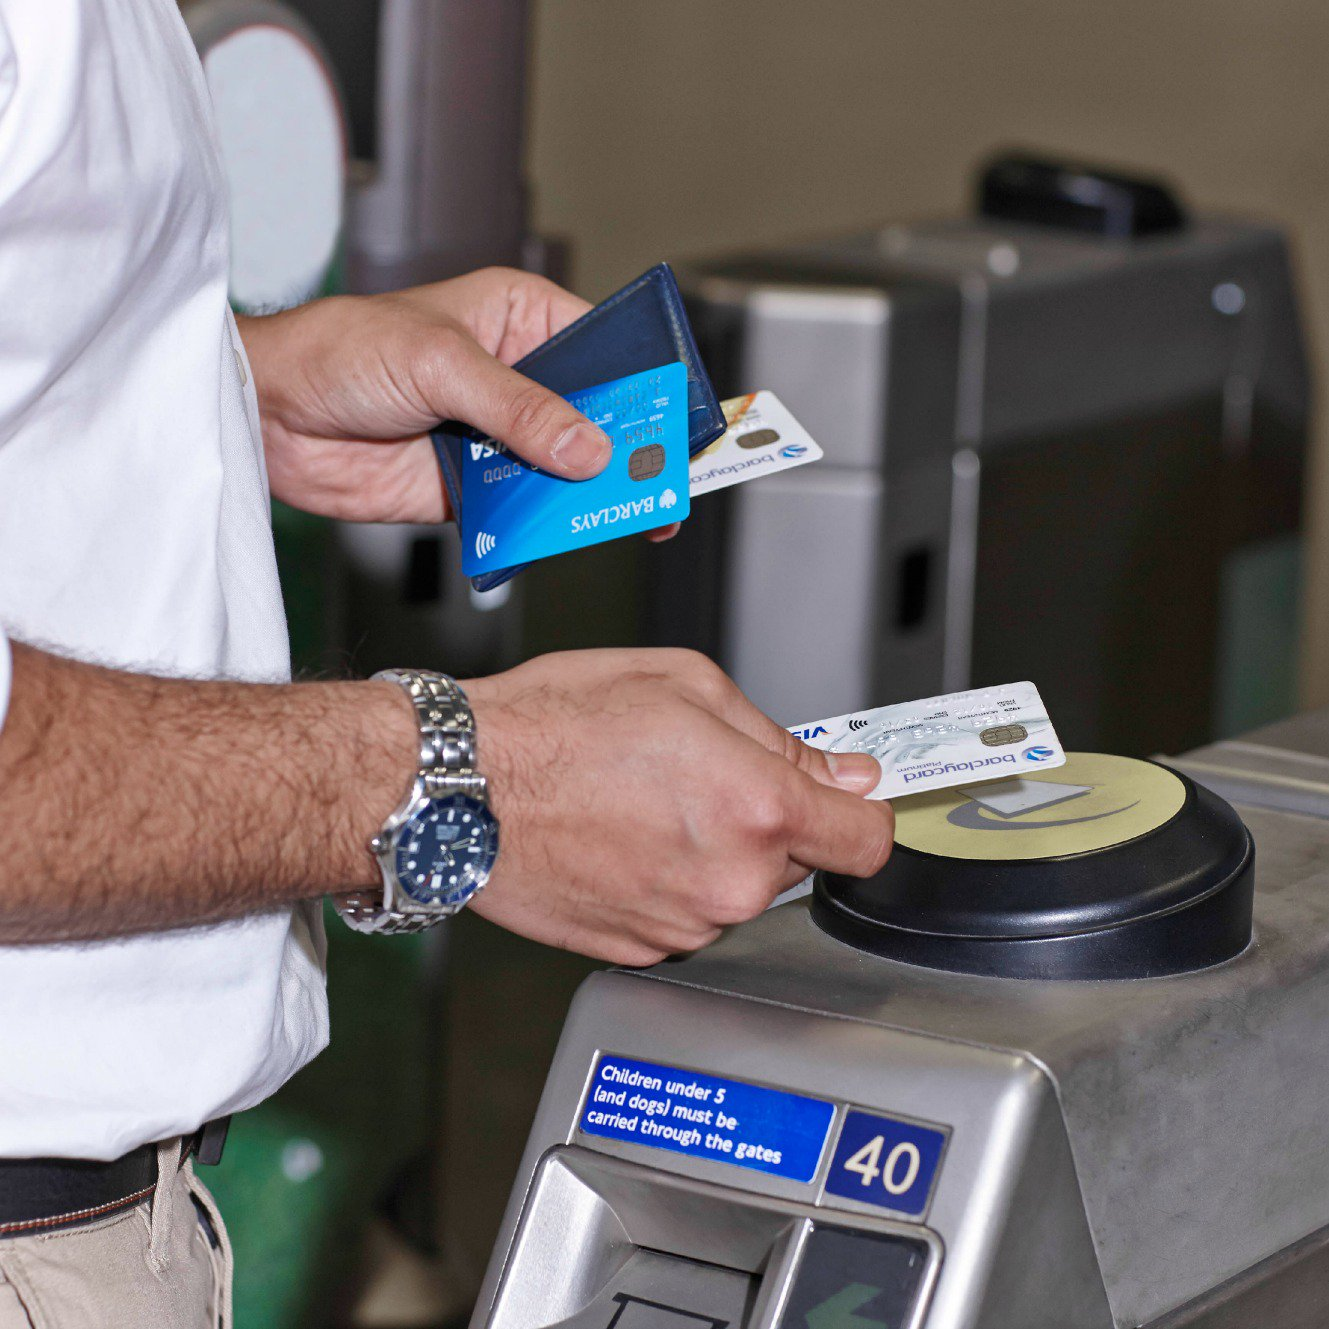 Contactless Payments Scheme Launches On The London Underground